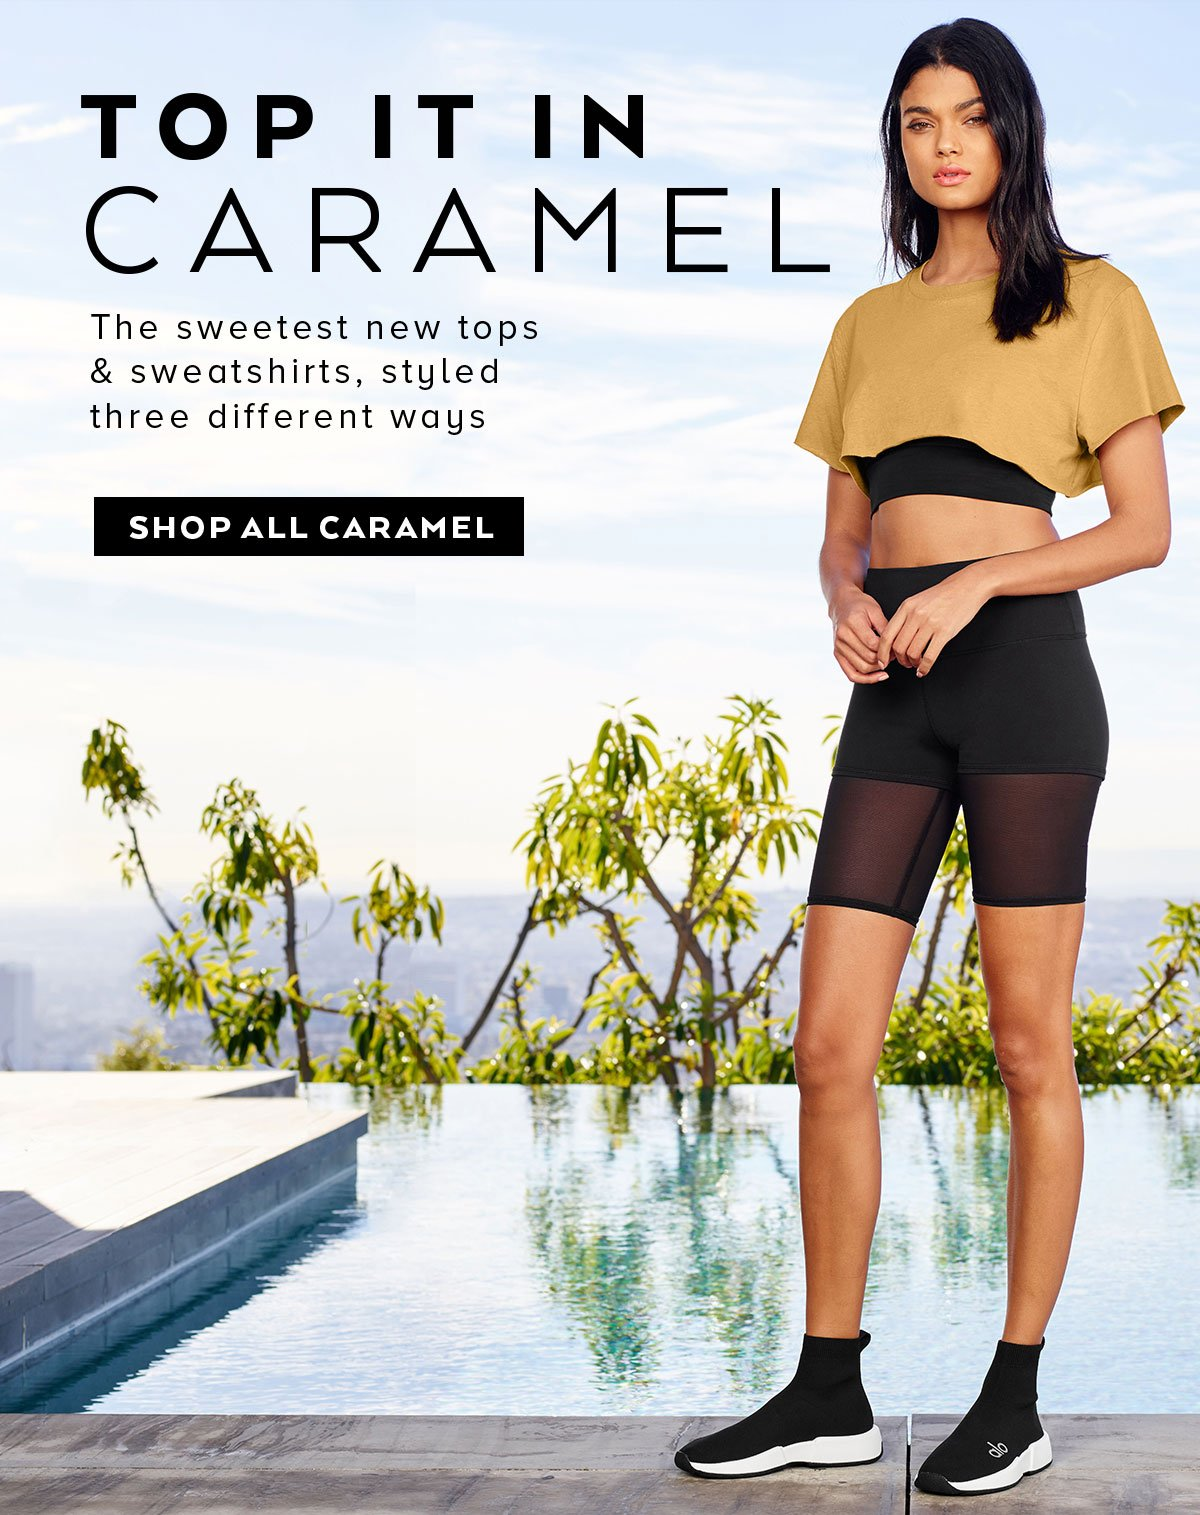 TOP IT IN CARAMEL - The sweetest new tops SHOP NOW